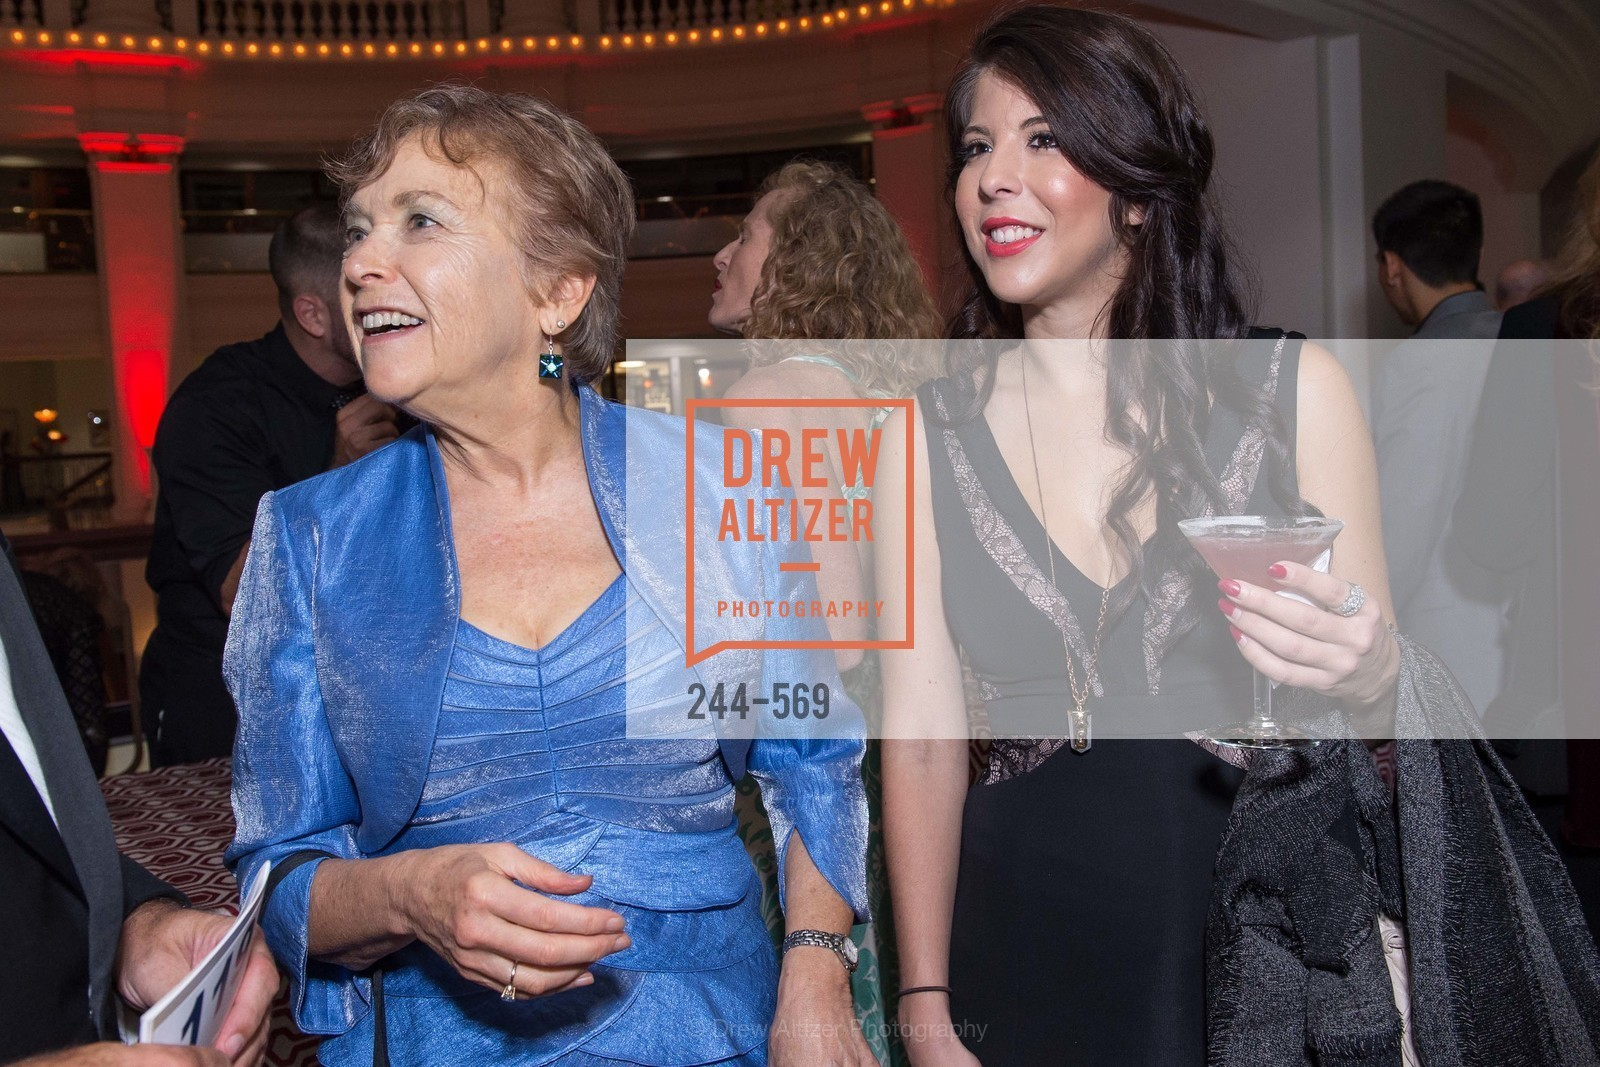 Sheila Jordan, Carina Gonzales, CHABOT Science Center STARLIGHT GALA, US, September 20th, 2014,Drew Altizer, Drew Altizer Photography, full-service event agency, private events, San Francisco photographer, photographer California